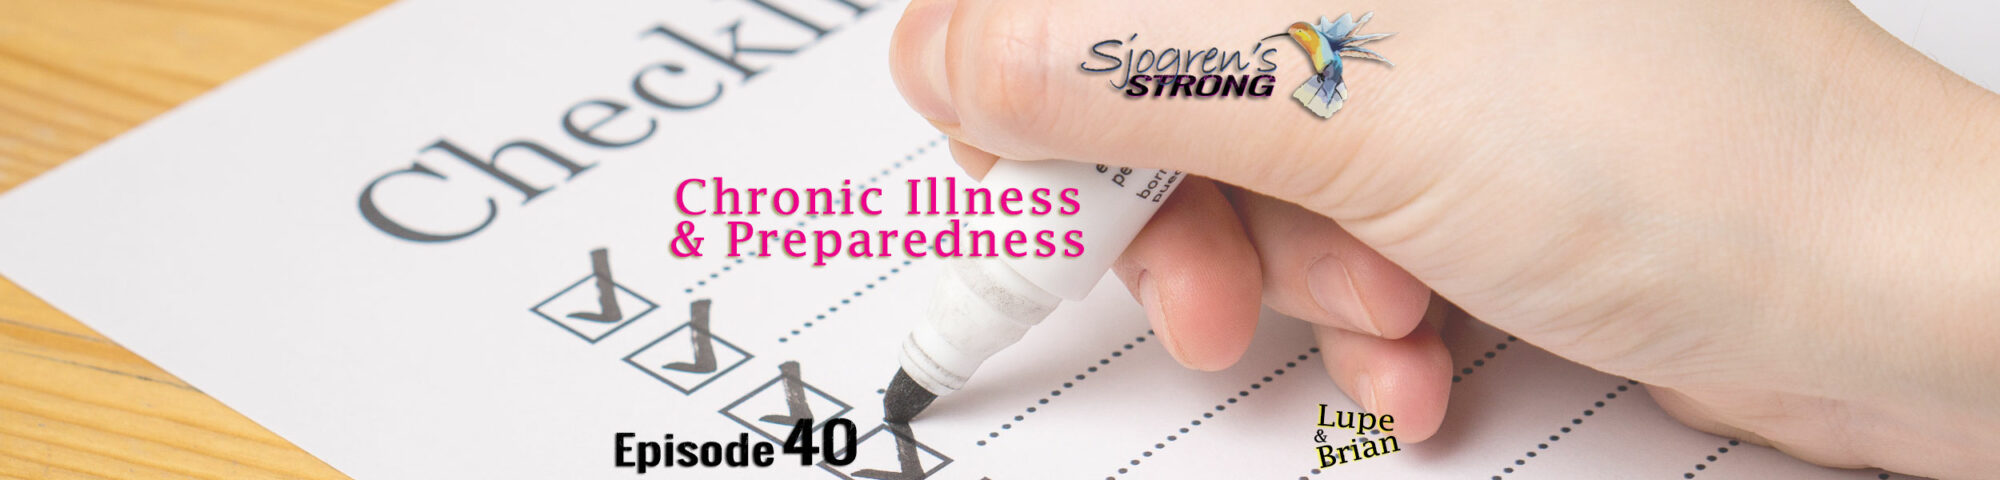 Chronic Illness and Preparedness